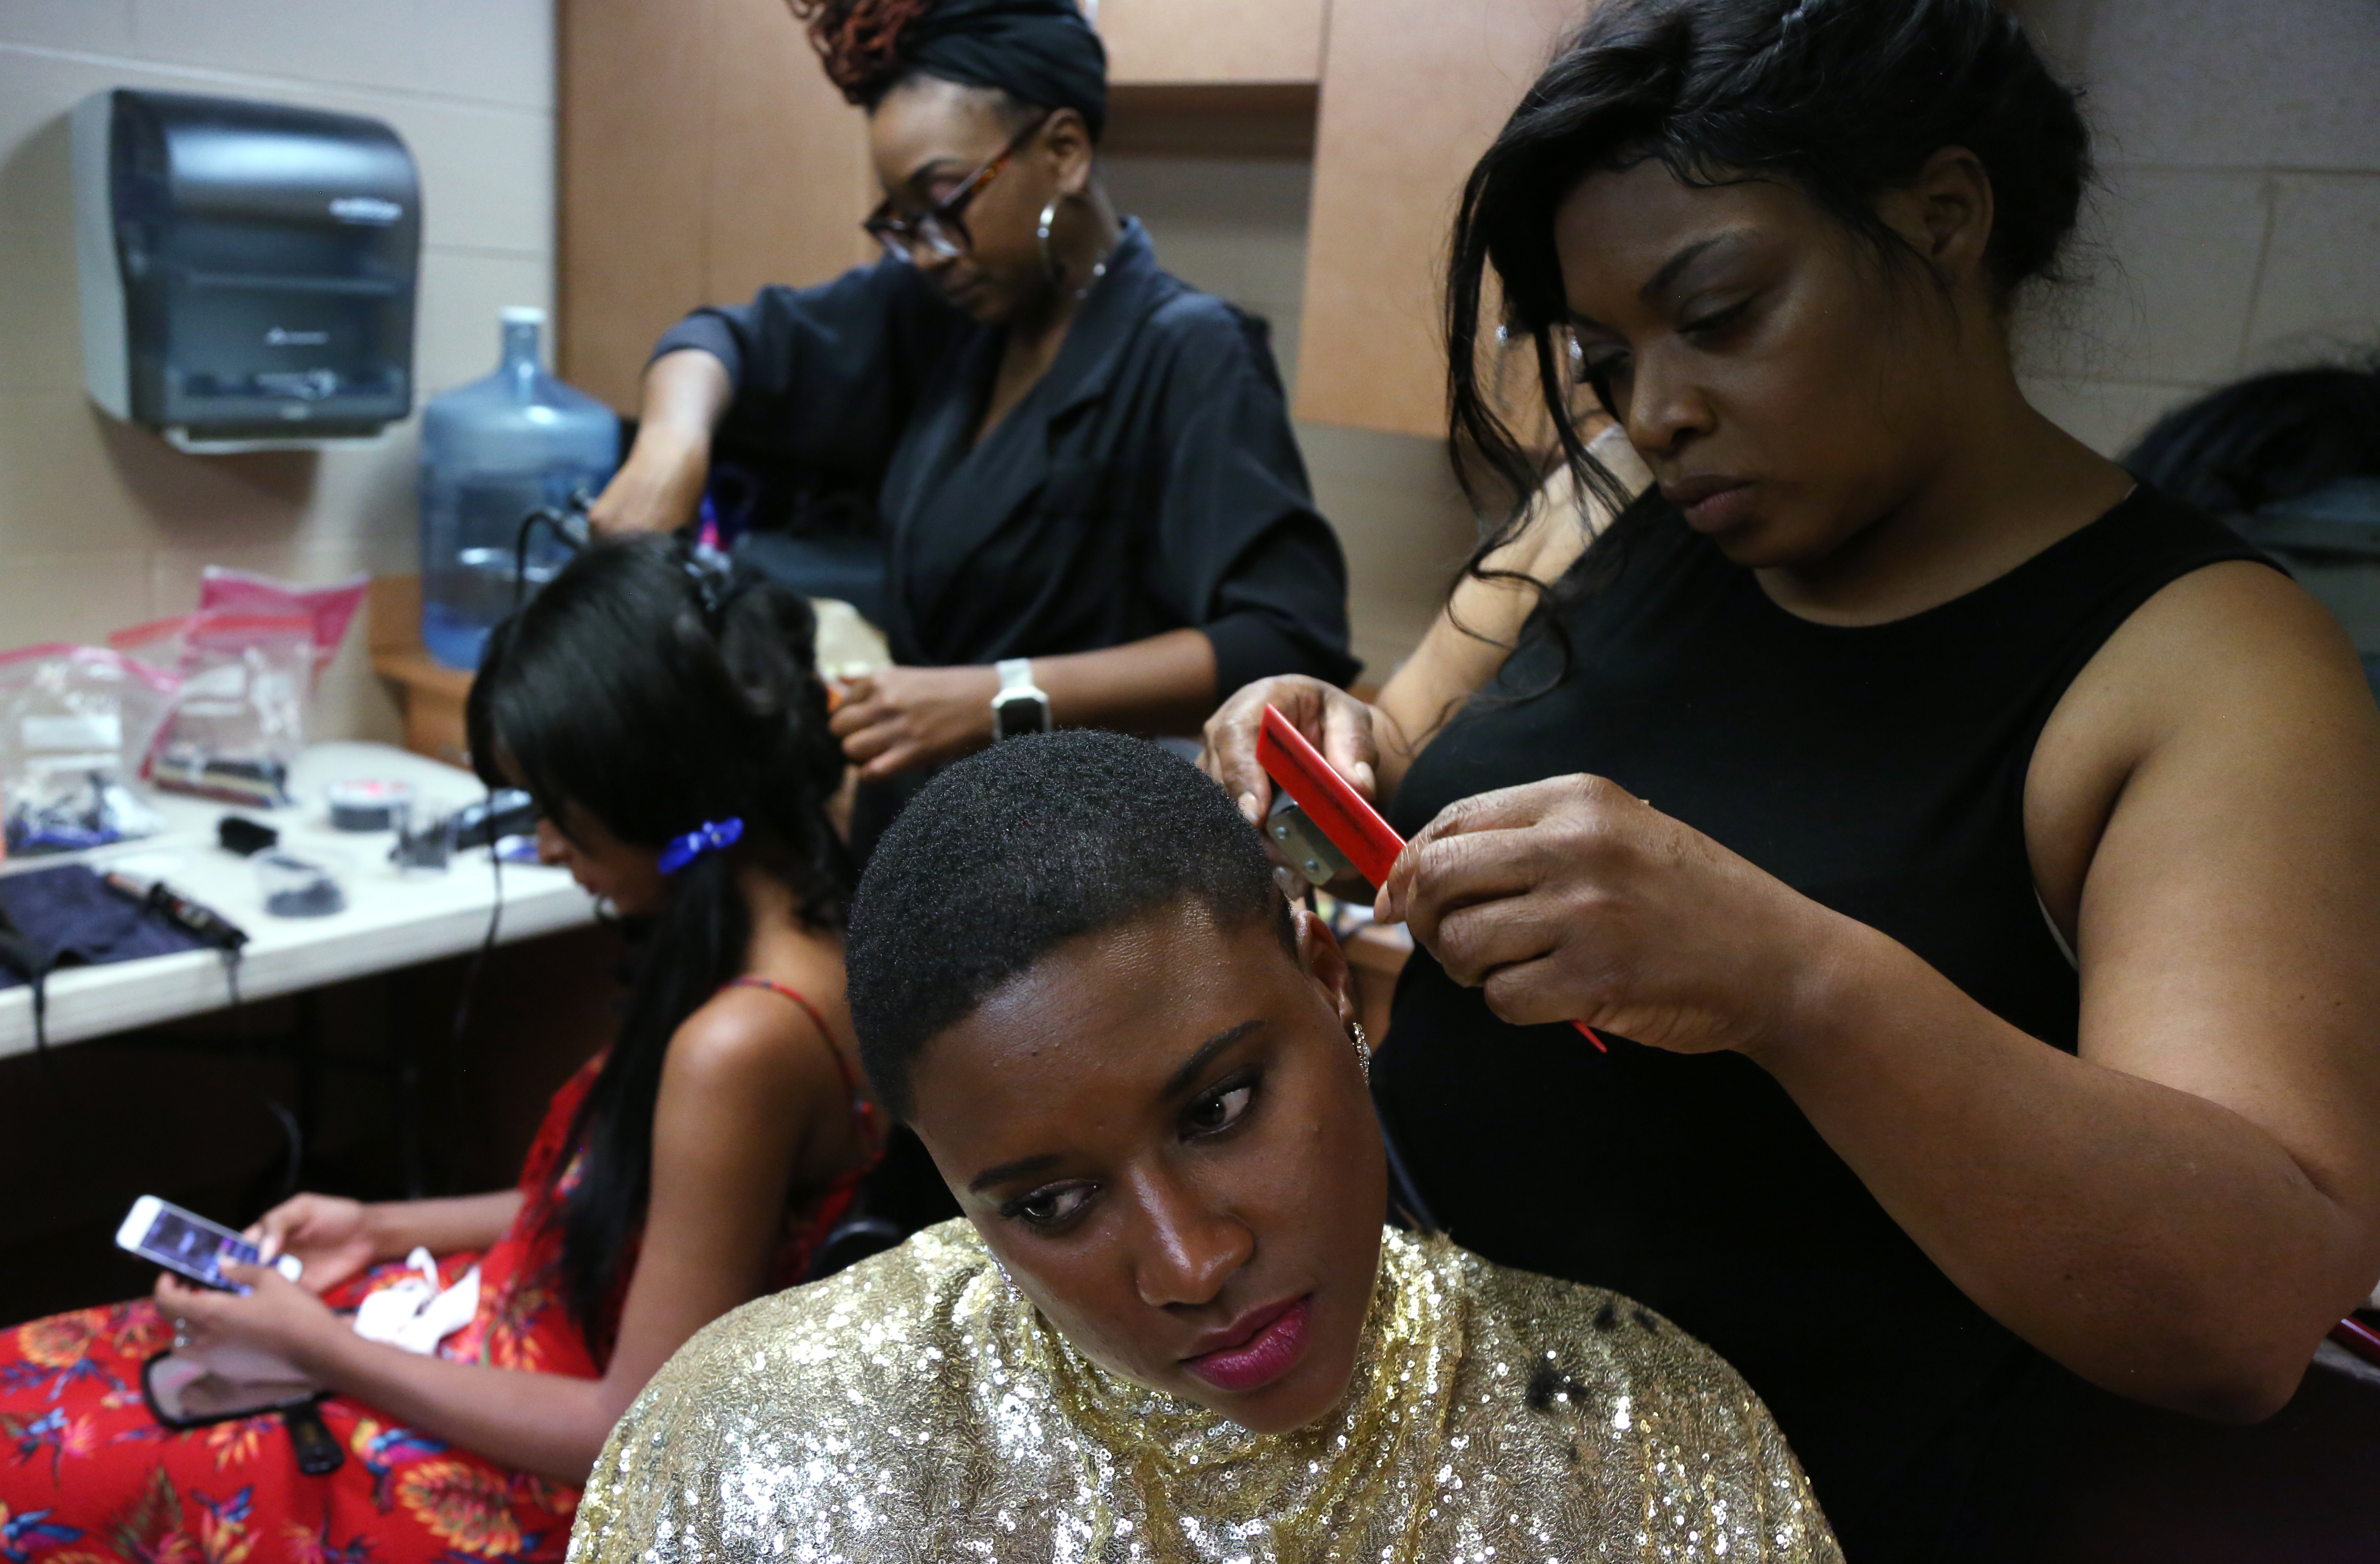 You can be unapologetically black': How Miss Black America